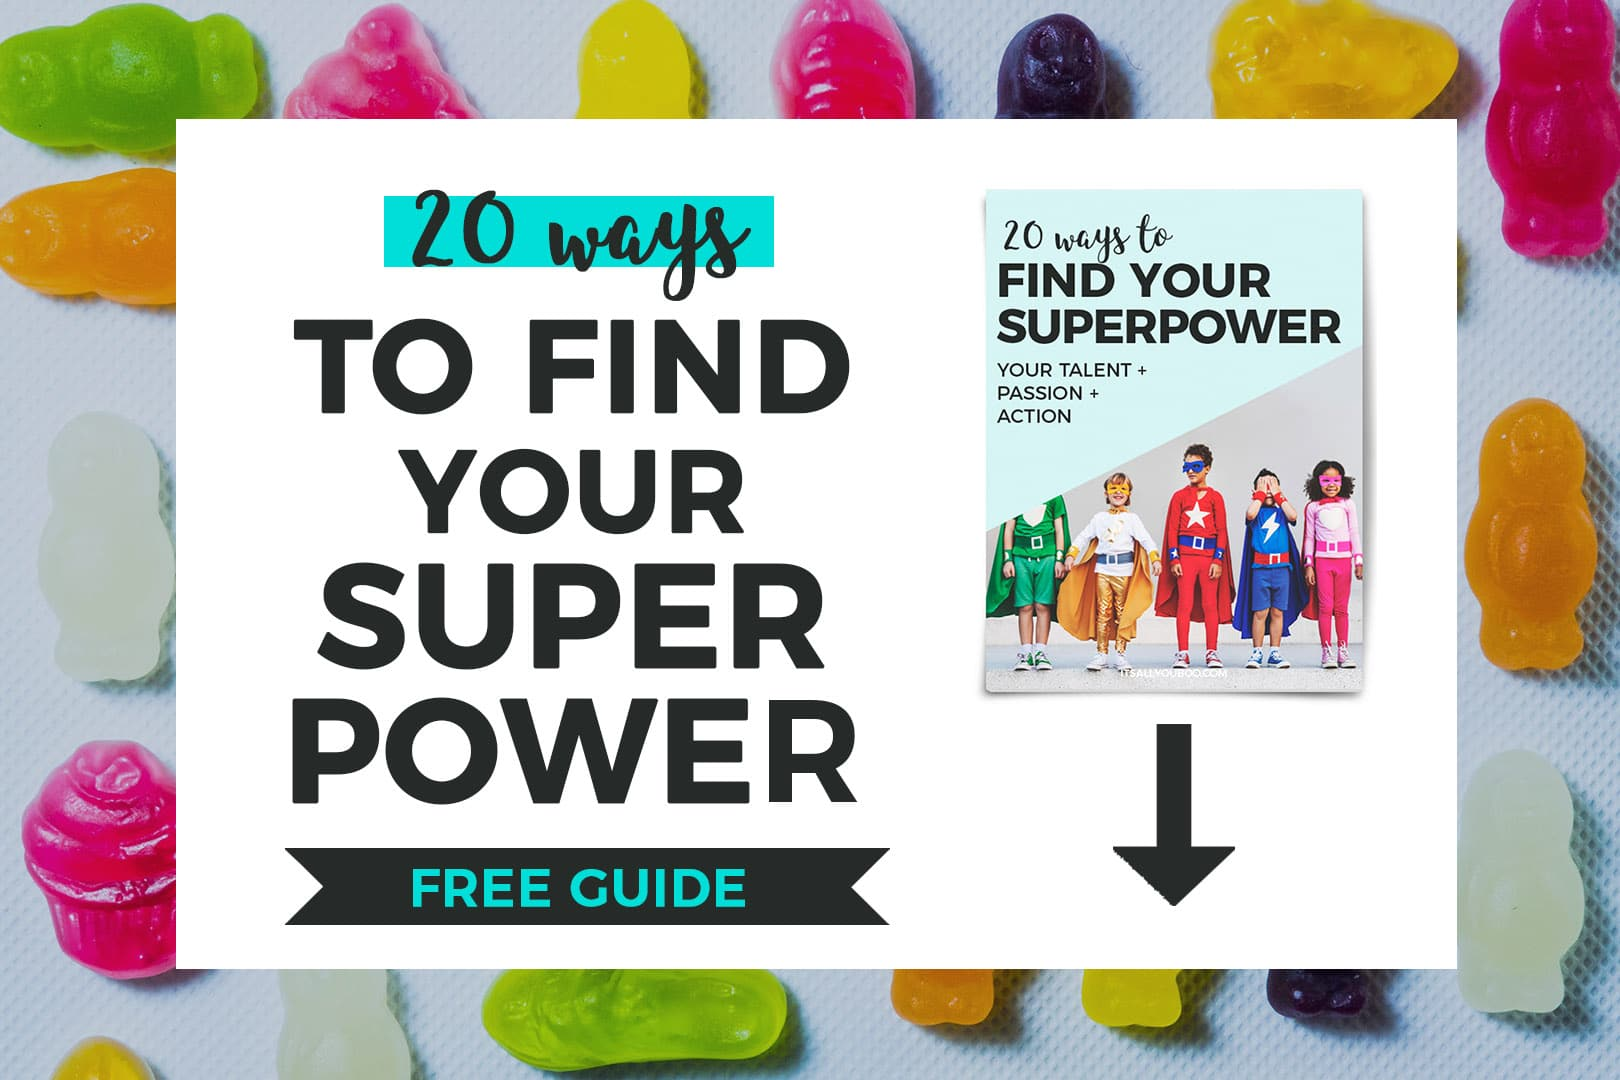 20 ways to find your super power (Free Guide), with preview image of guide and arrow pointing downwards.